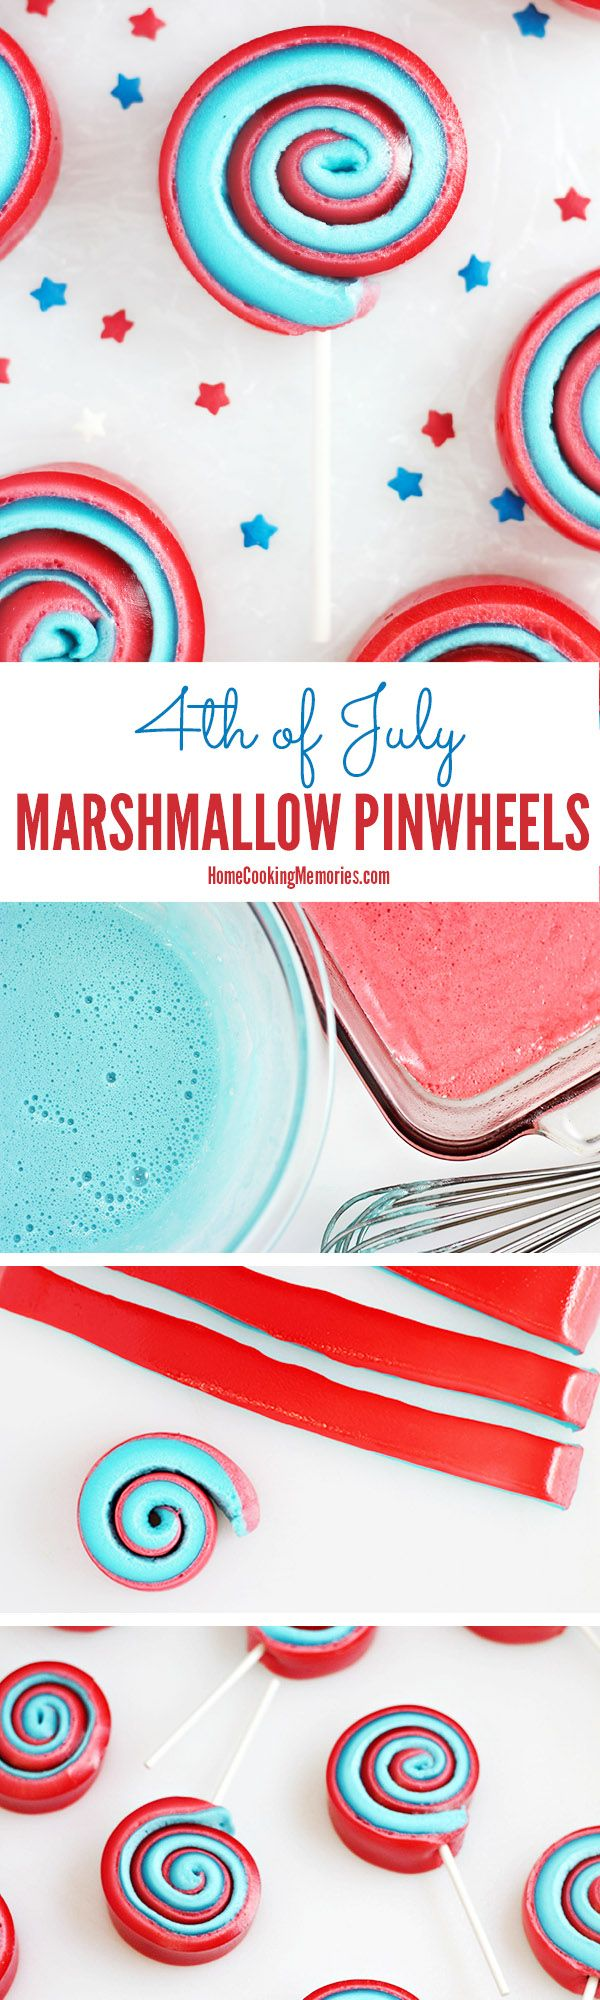 These are so fun! 4th of July Marshmallow Pinwheels - a sweet treat-on-a-stick that the kids will love! You only need 5 things: 2 colors of Jello, plus mini marshmallows, water & lollipop sticks. EASY!